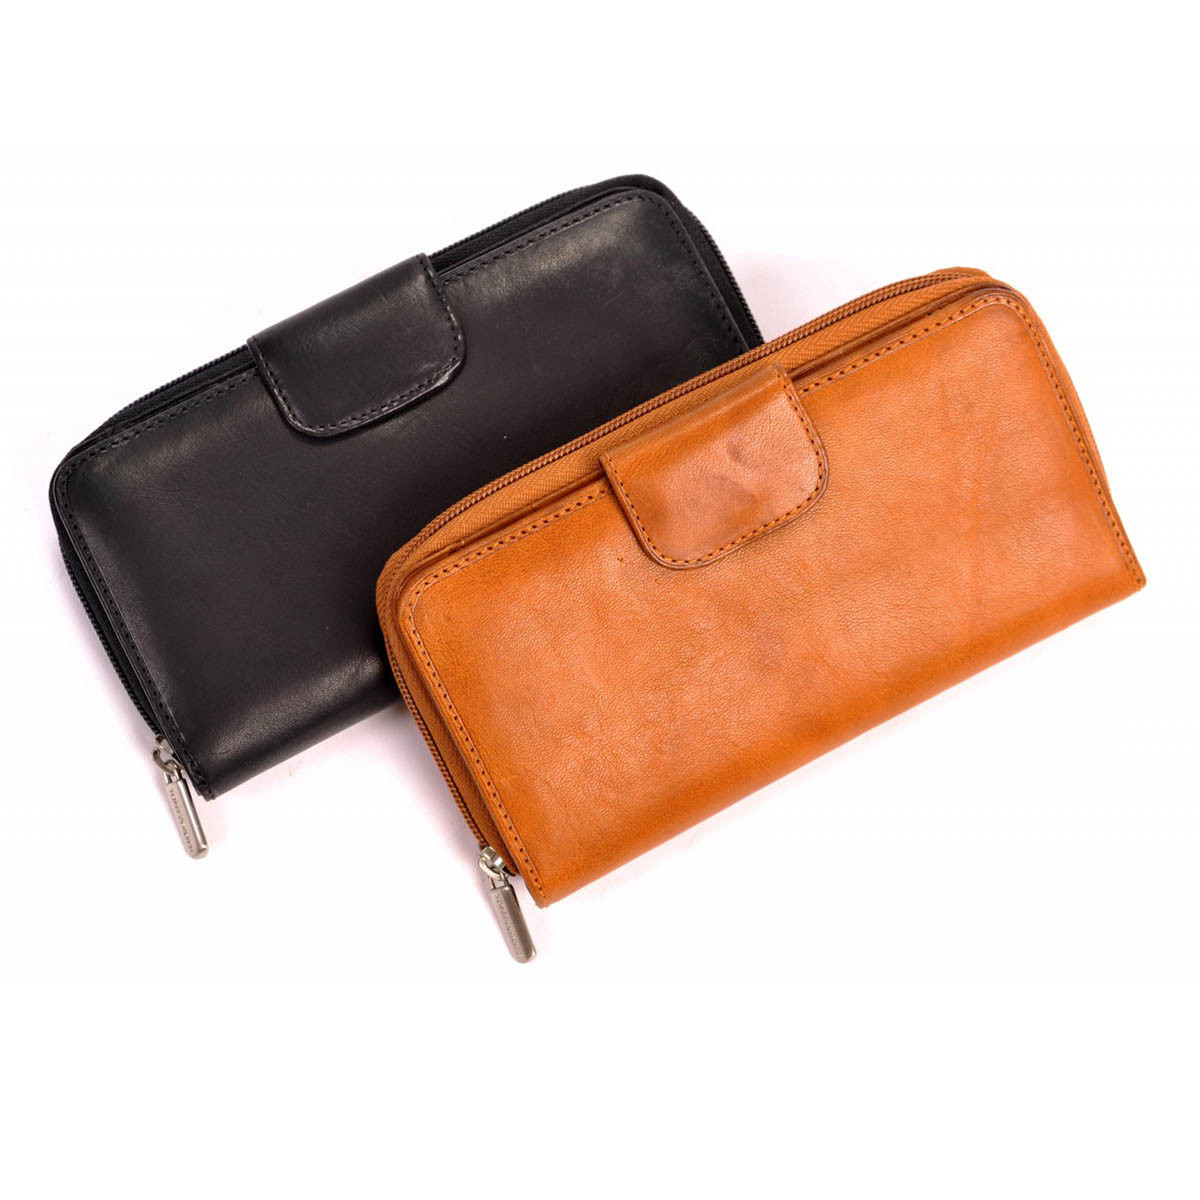 Tony Perotti Womens Italian Cow Leather Grande Zip-Around Clutch ... 788b9fe5d6